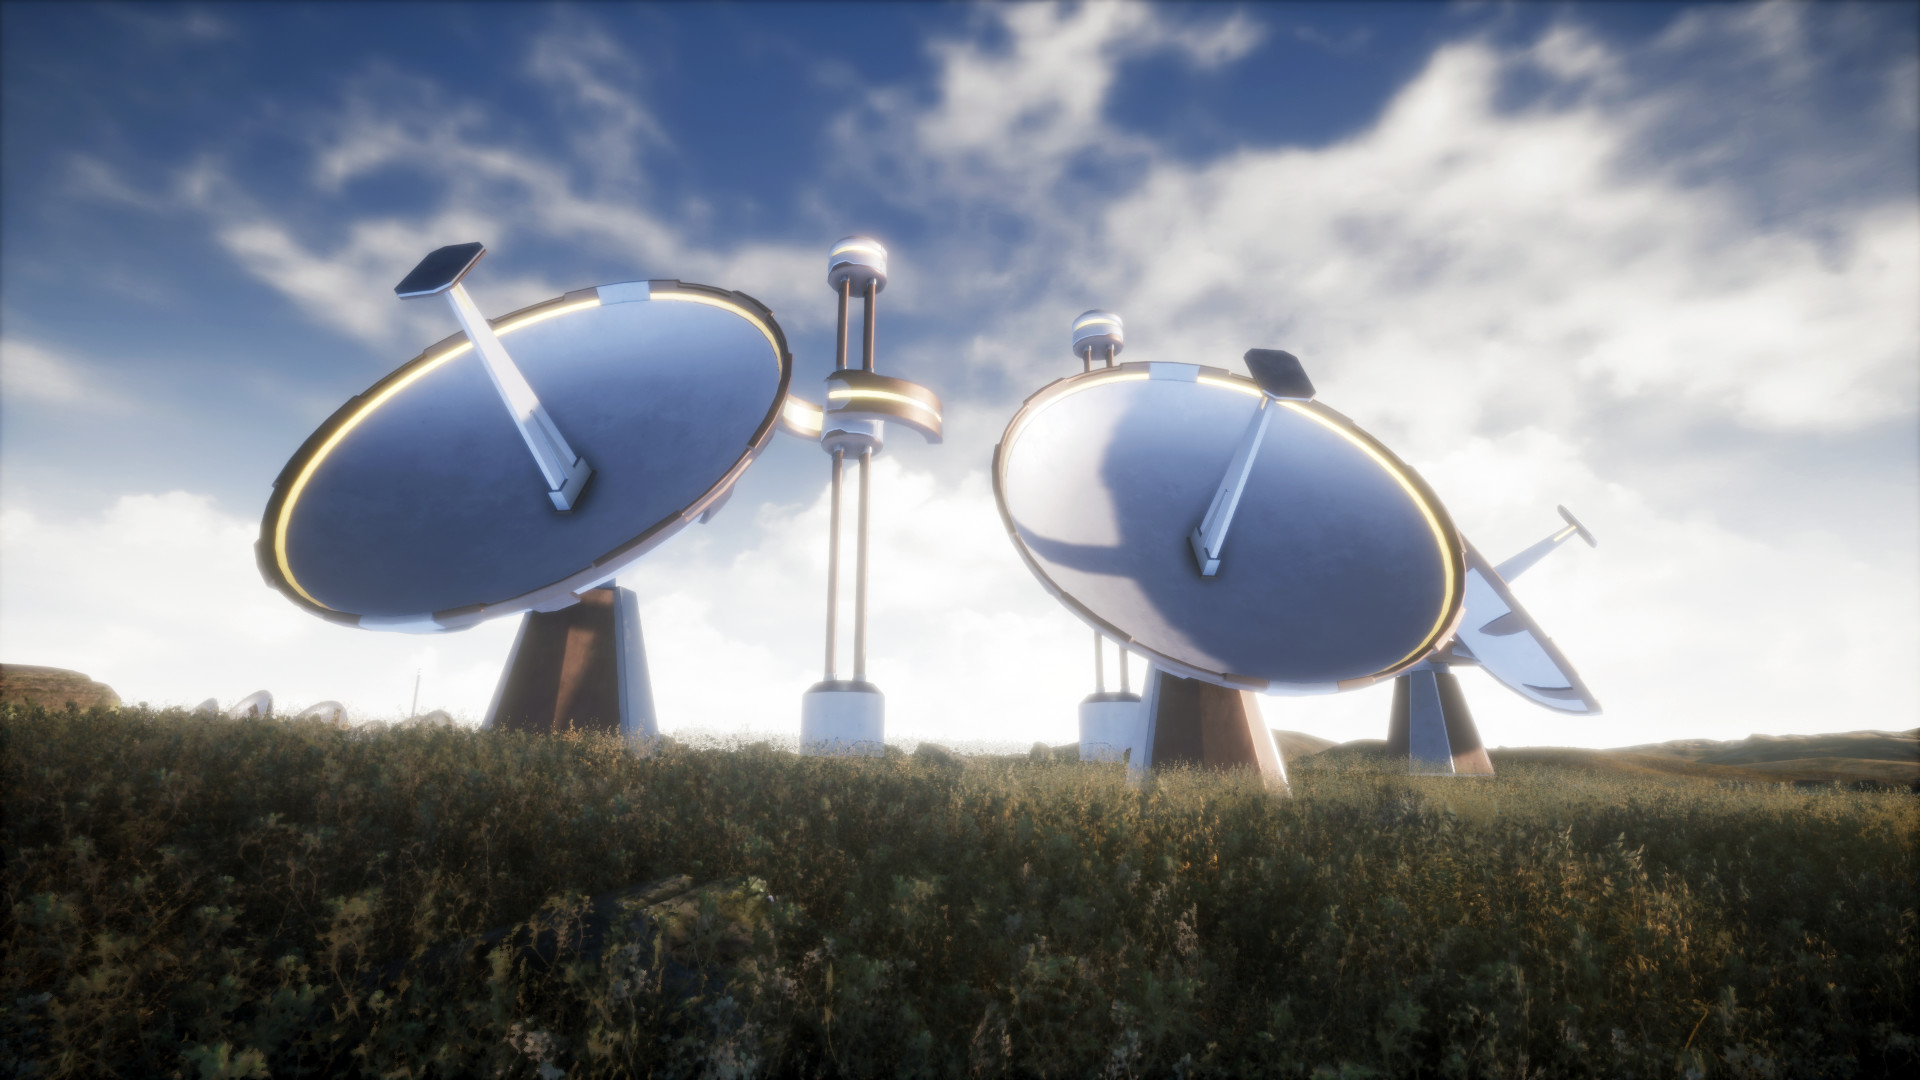 I know theyre not monuments, but giant satellites and antennas do make for some good scene filler.